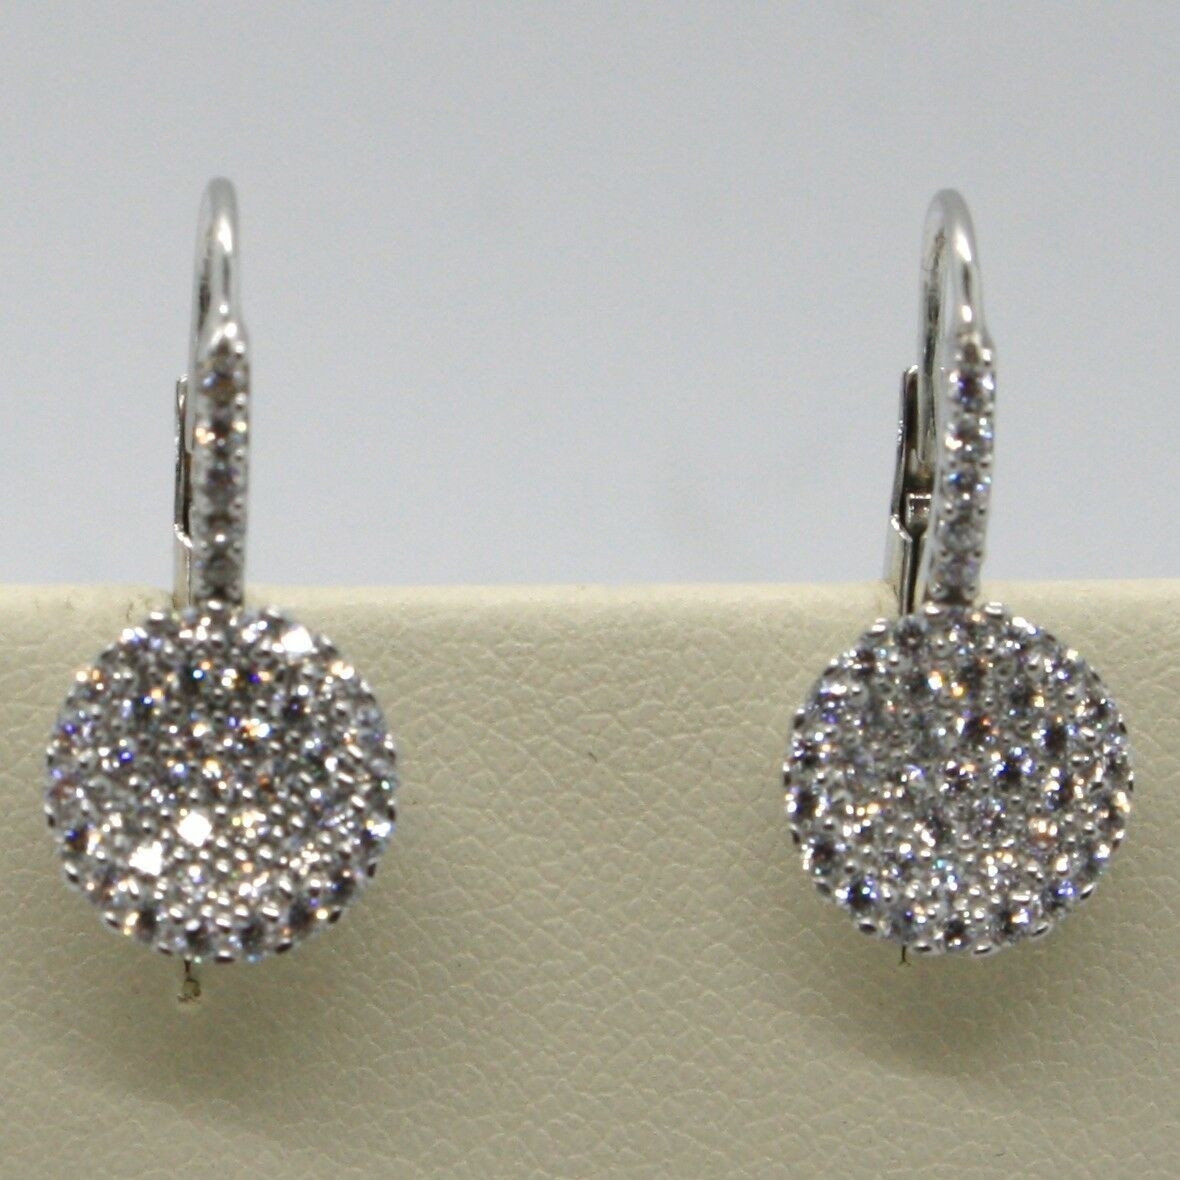 18K WHITE GOLD LEVERBACK EARRINGS, CIRCLE ZIRCONIA DISC LENGTH 20 MM, ITALY MADE